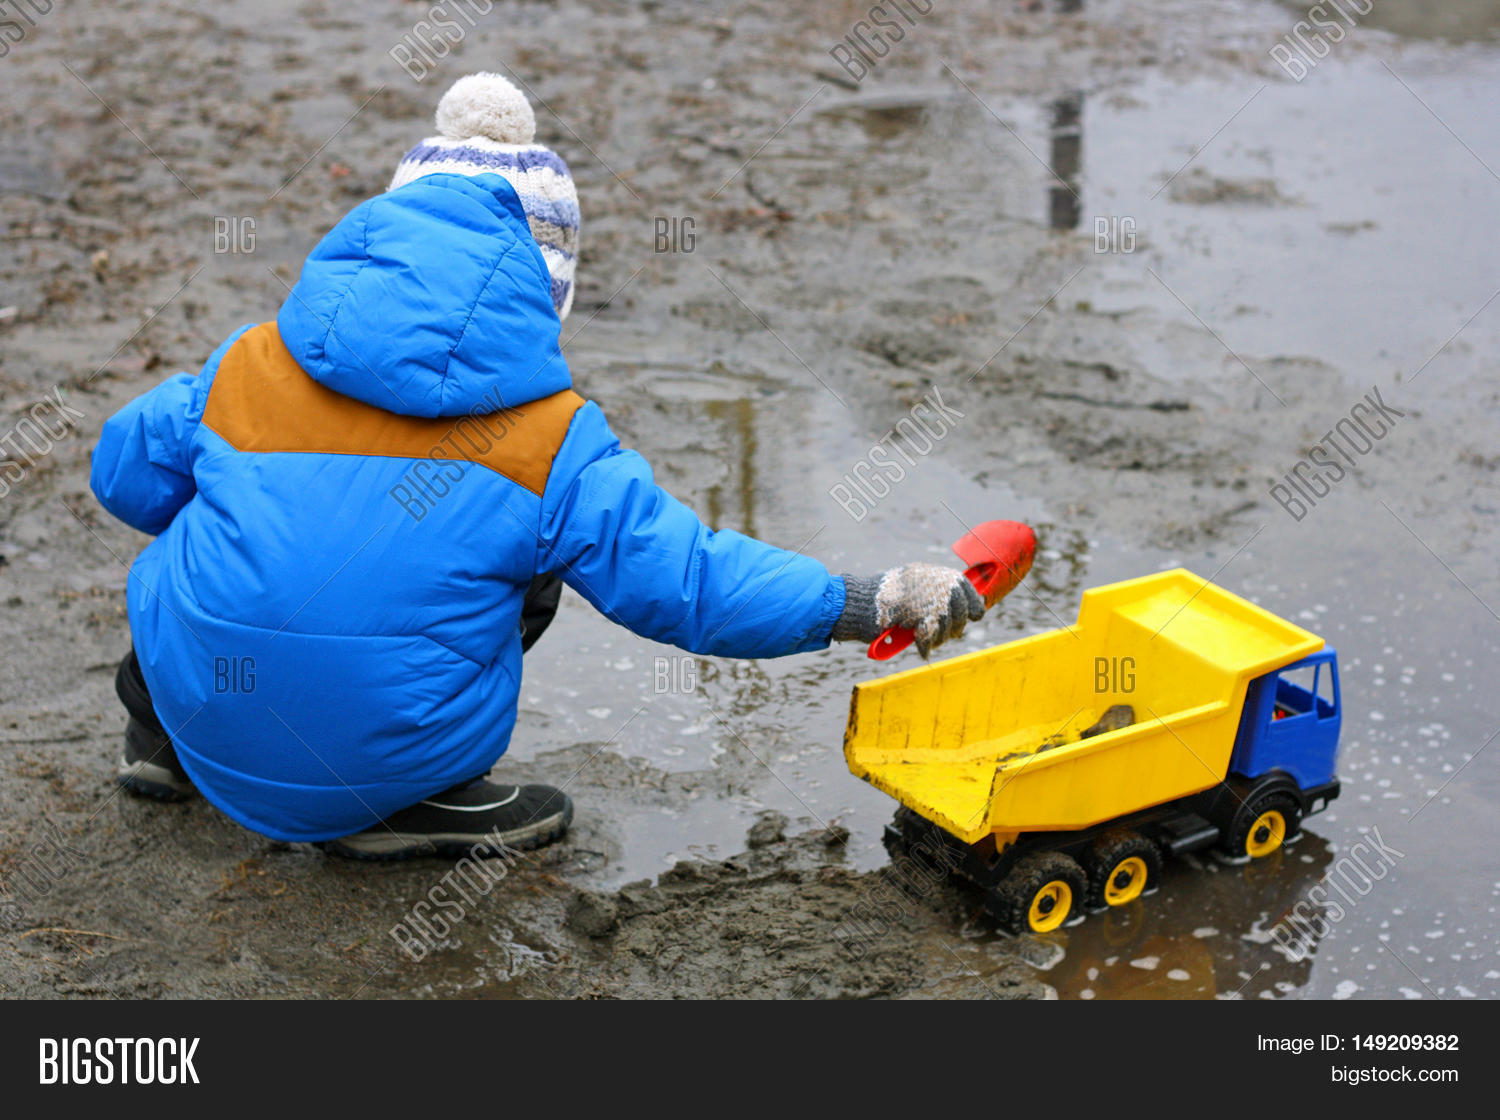 Children's Outdoor Play. Child Blue Image & Photo | Bigstock